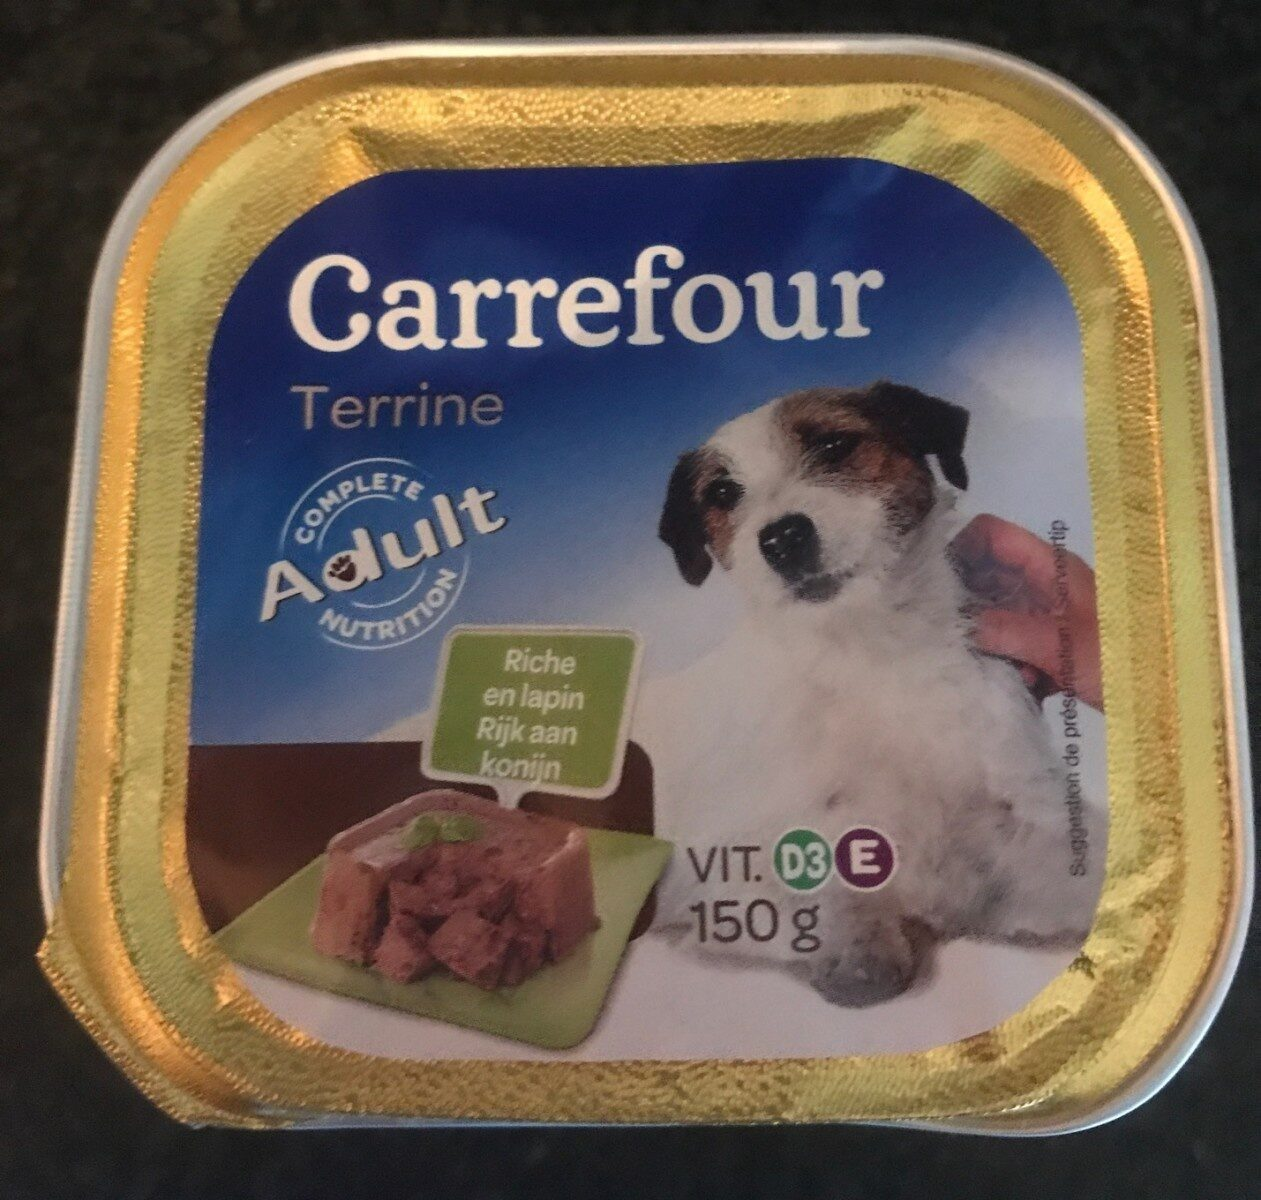 Delicieuse terrine de lapin - Product - fr